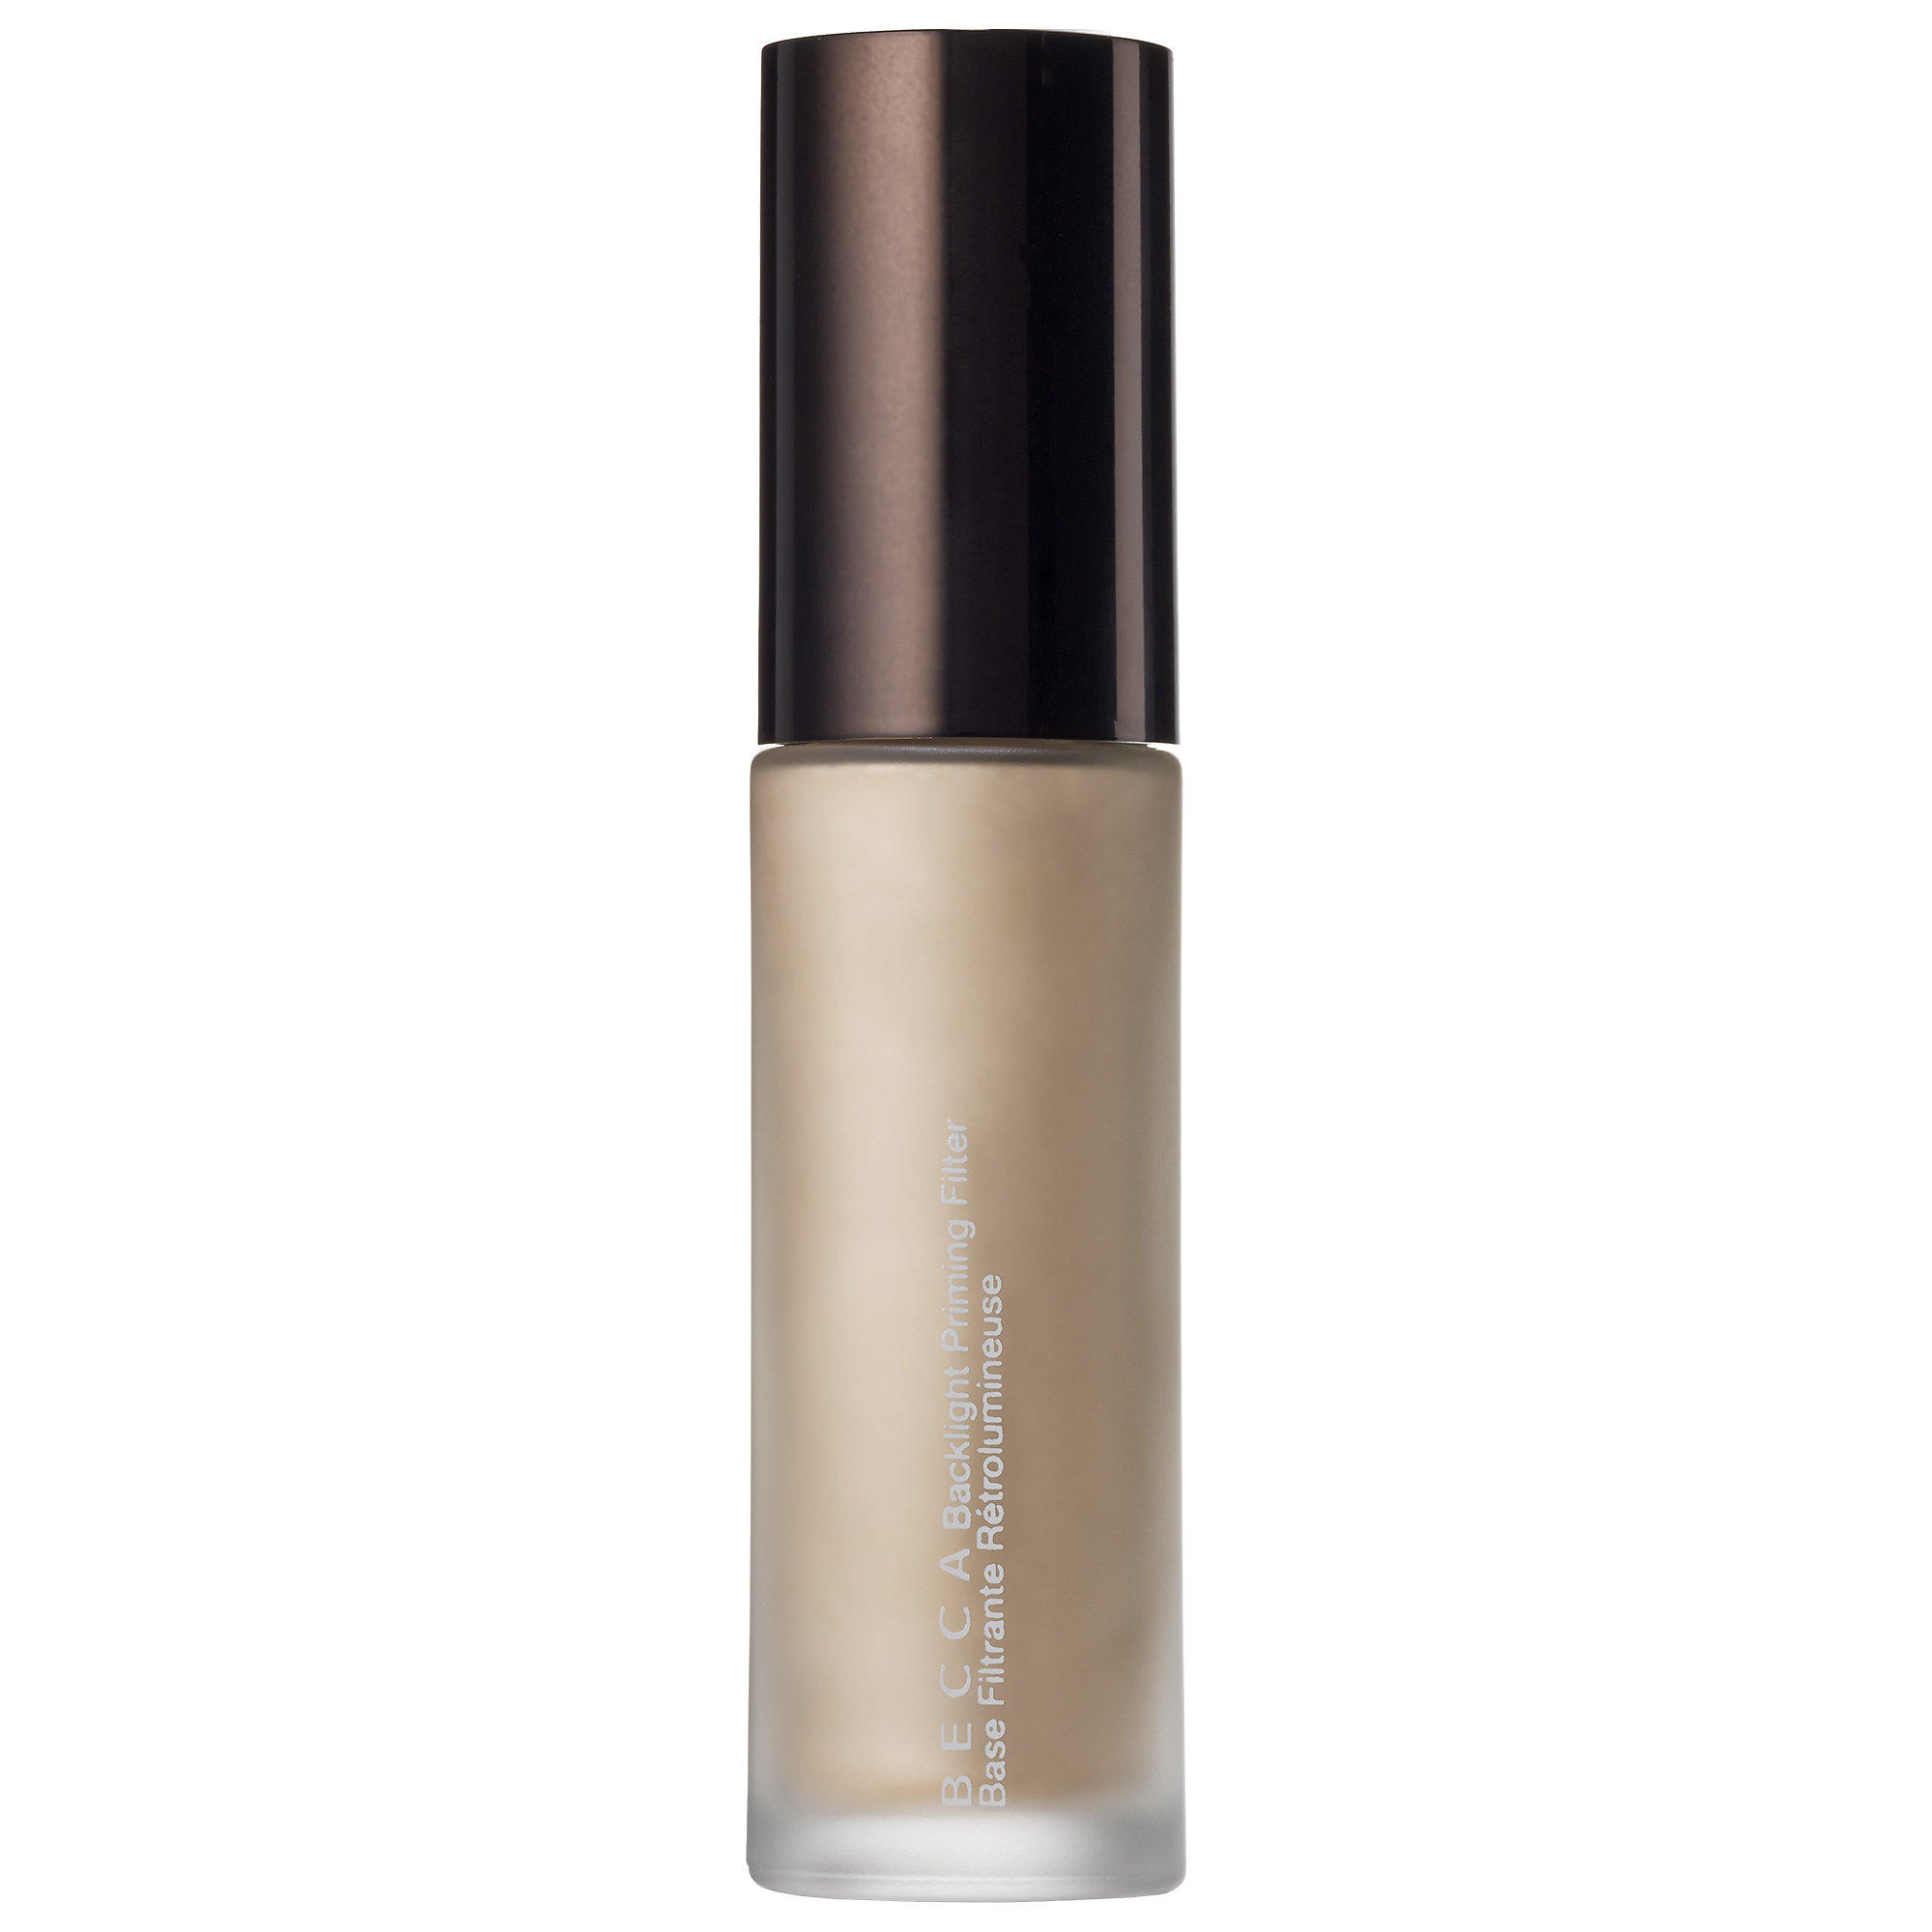 New Release Becca launched New Backlight Priming Filter